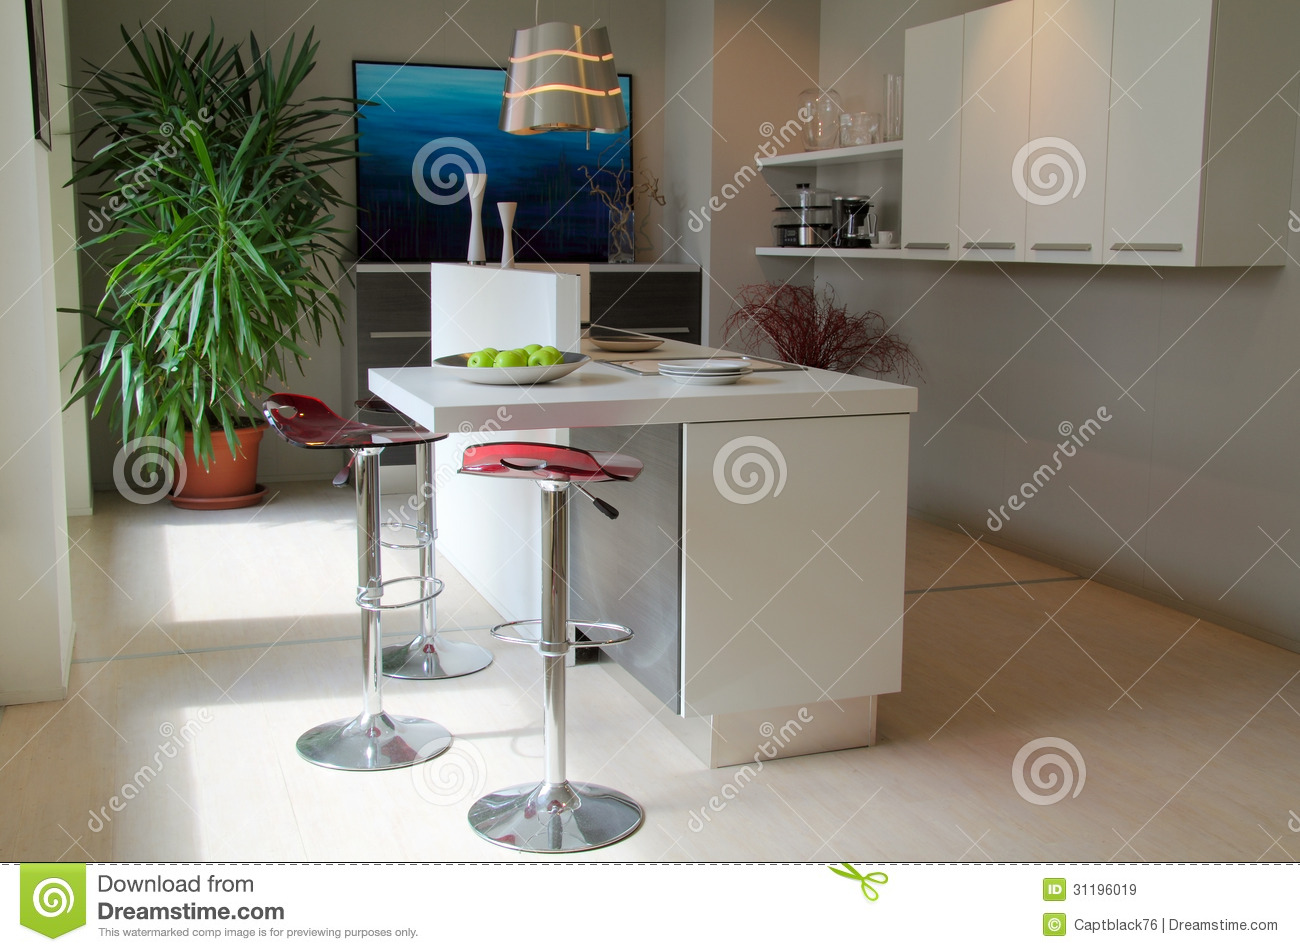 Remarkable Modern Kitchen With Red Stools Stock Image Image Of Short Links Chair Design For Home Short Linksinfo